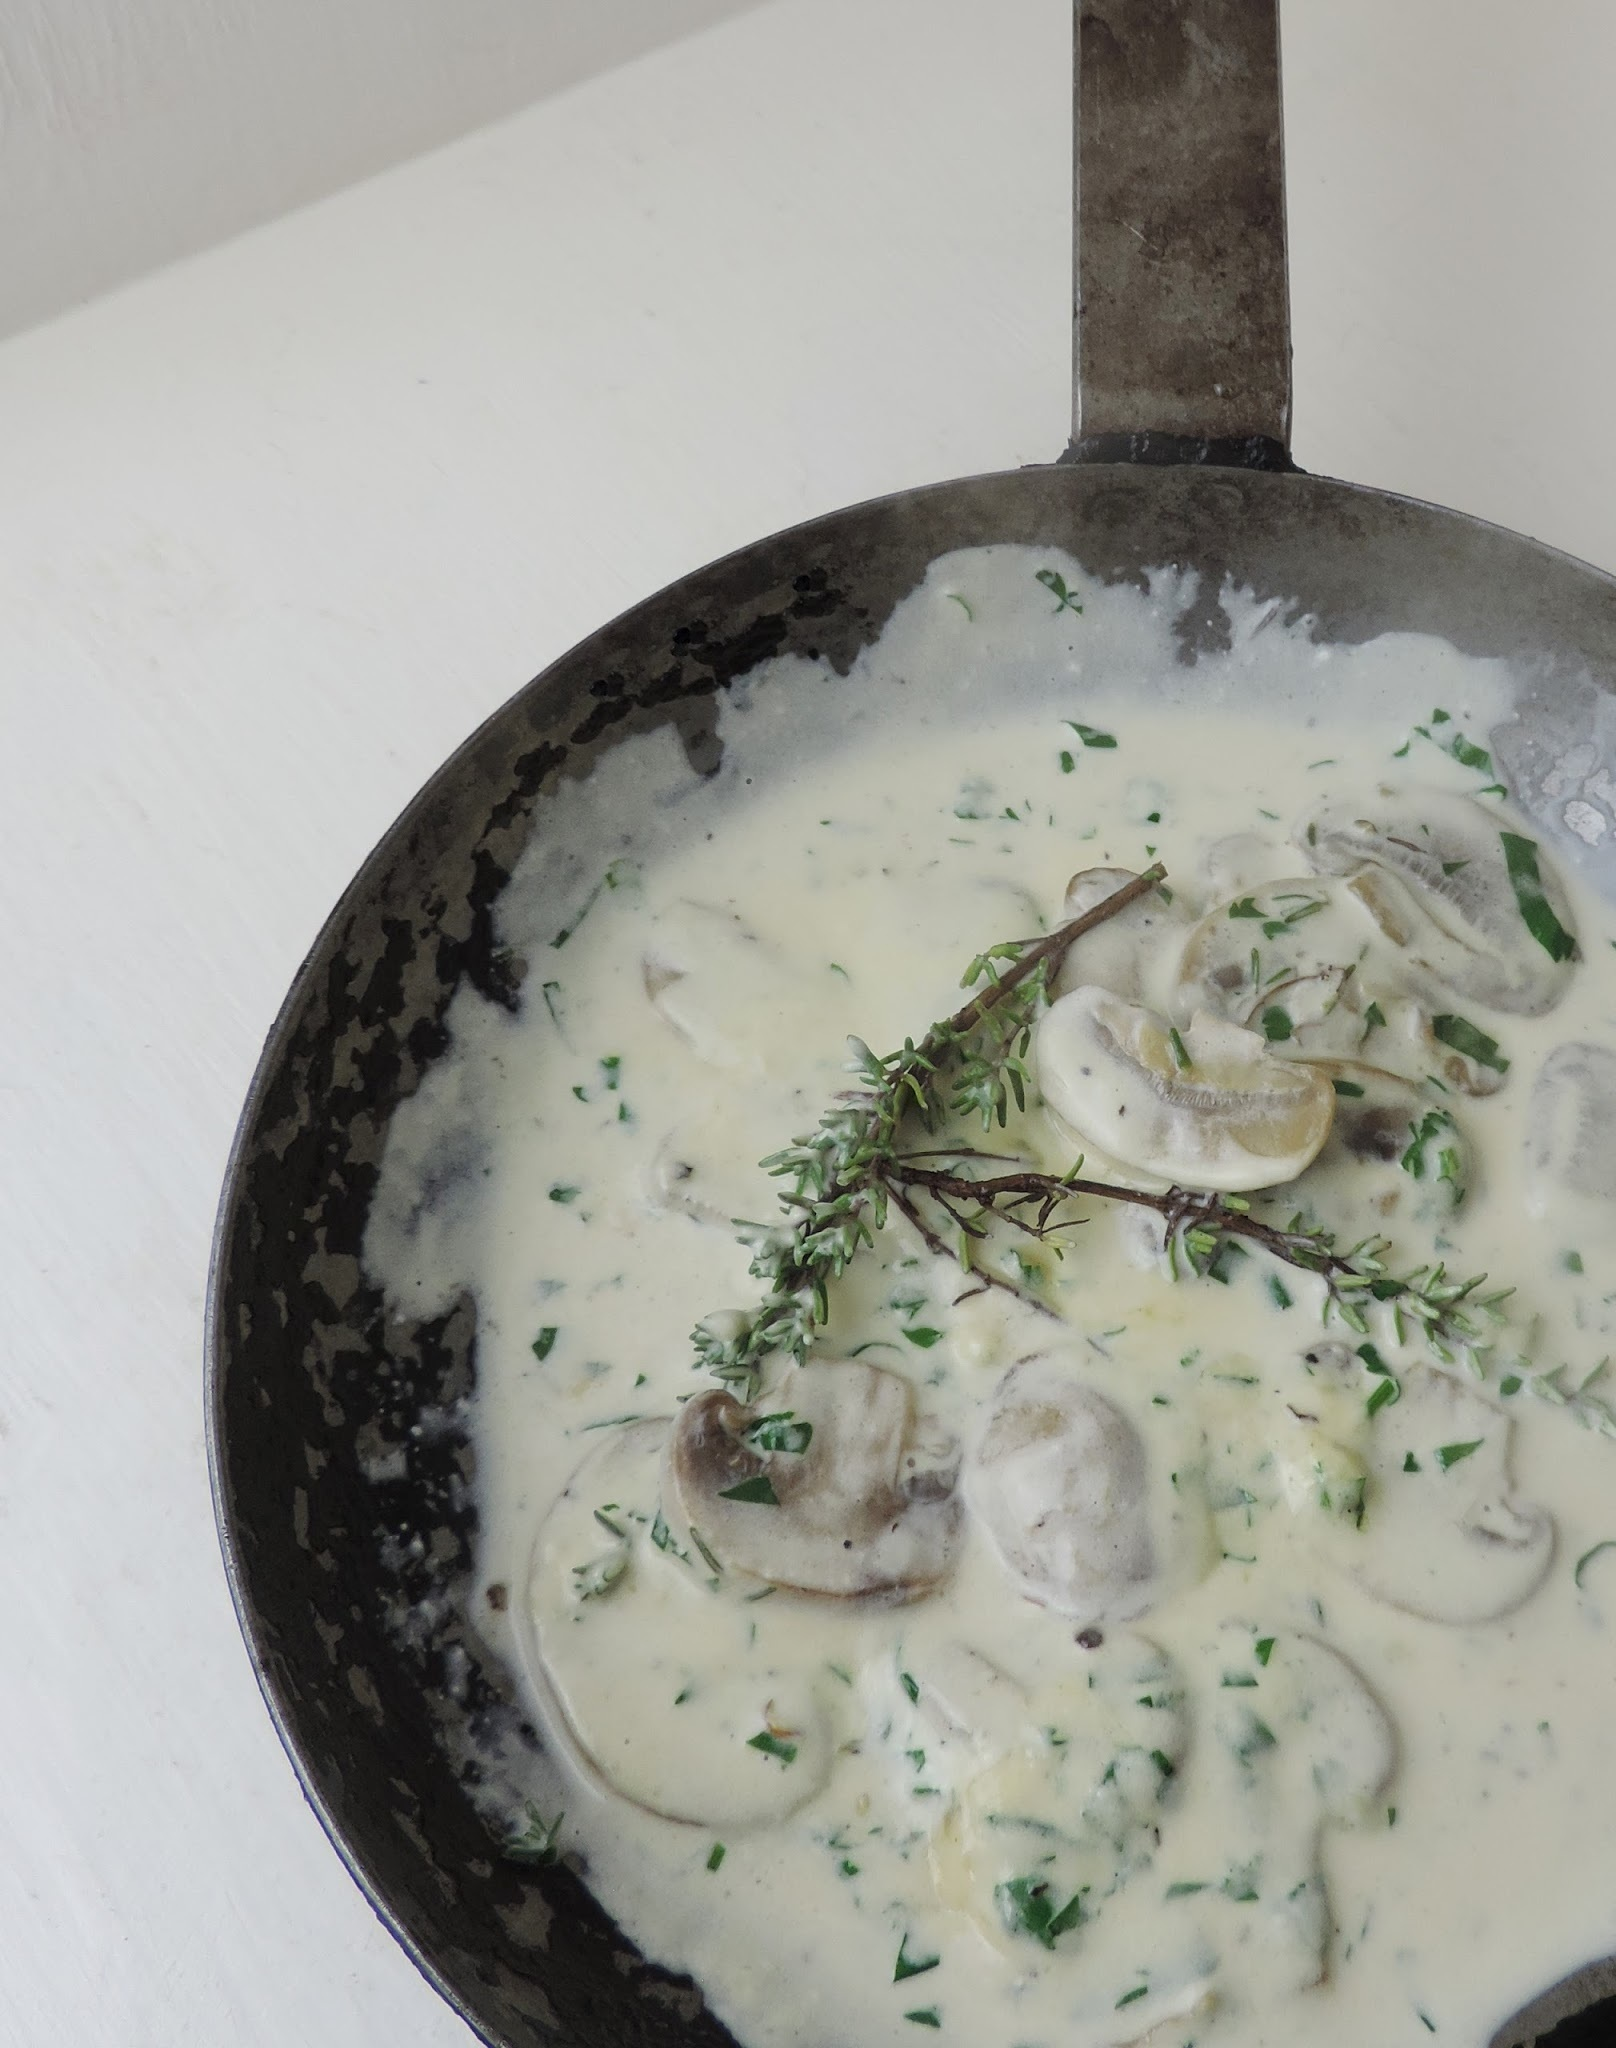 Mushrooms in a Cream and Herbs